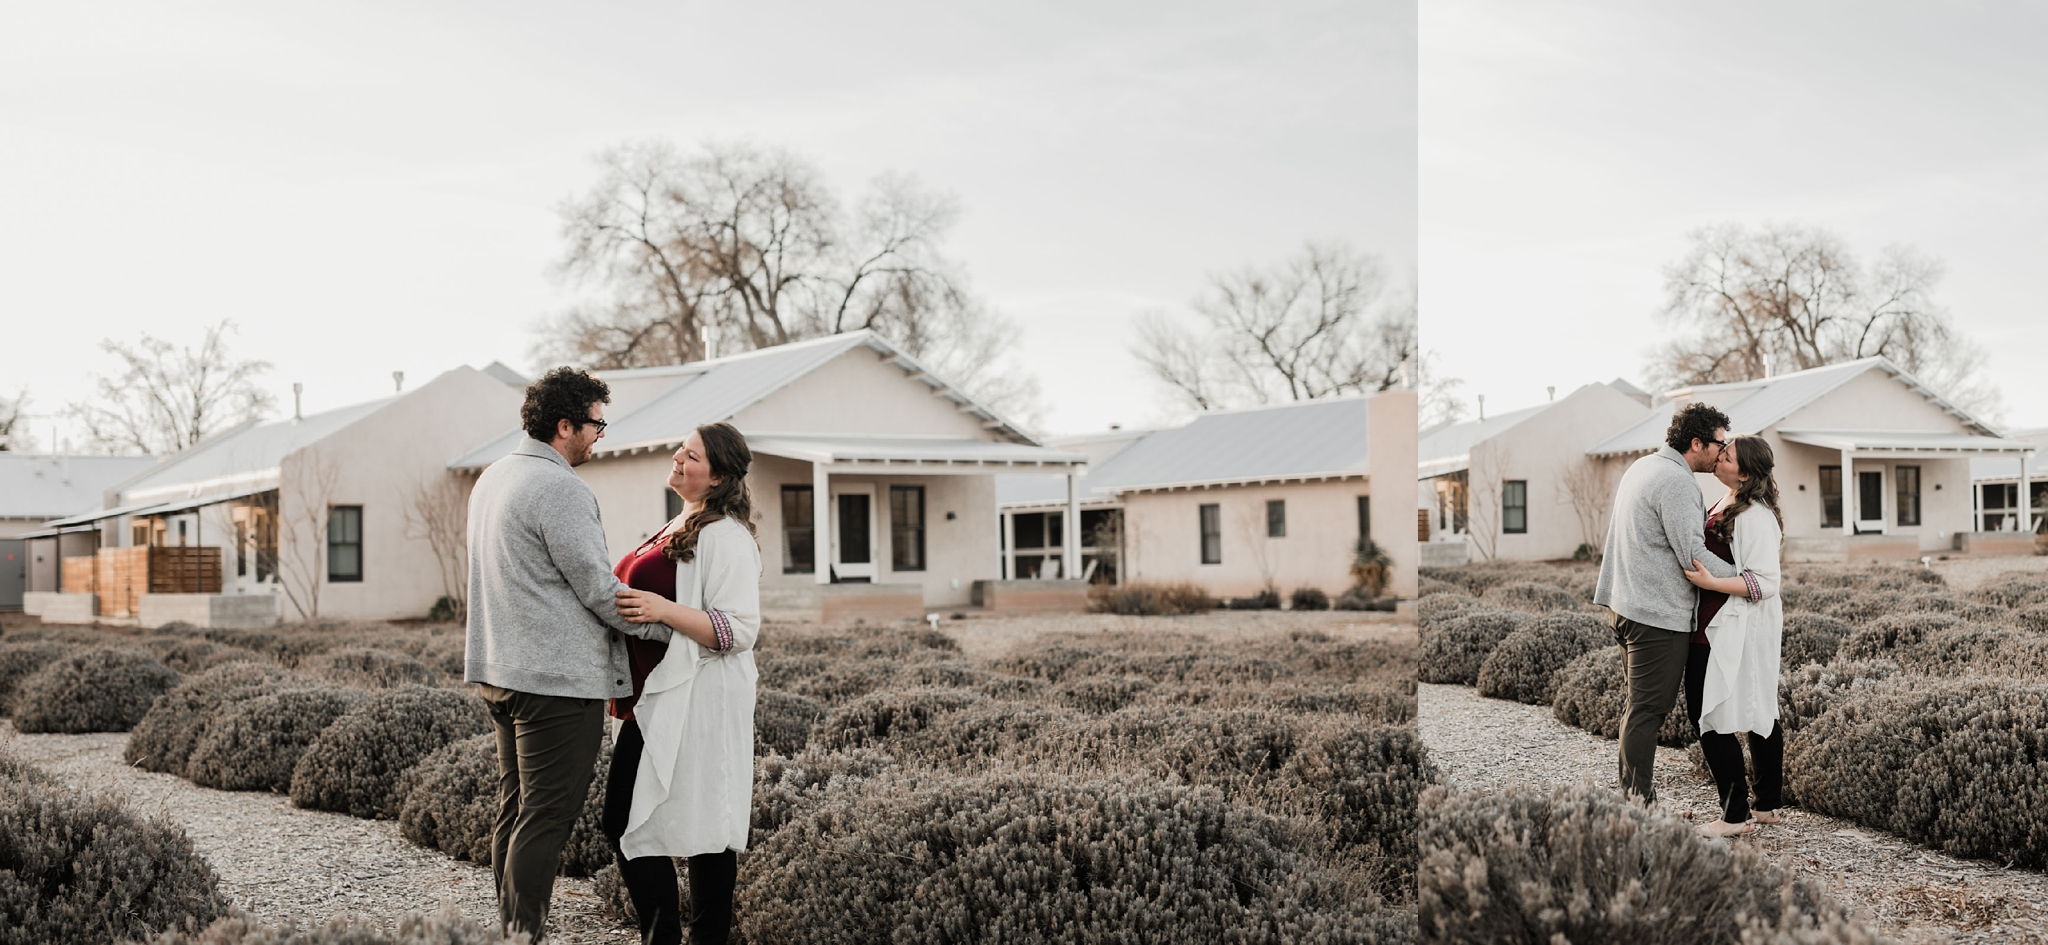 Alicia+lucia+photography+-+albuquerque+wedding+photographer+-+santa+fe+wedding+photography+-+new+mexico+wedding+photographer+-+new+mexico+engagement+-+los+poblanos+engagement+-+spring+engagement_0005.jpg